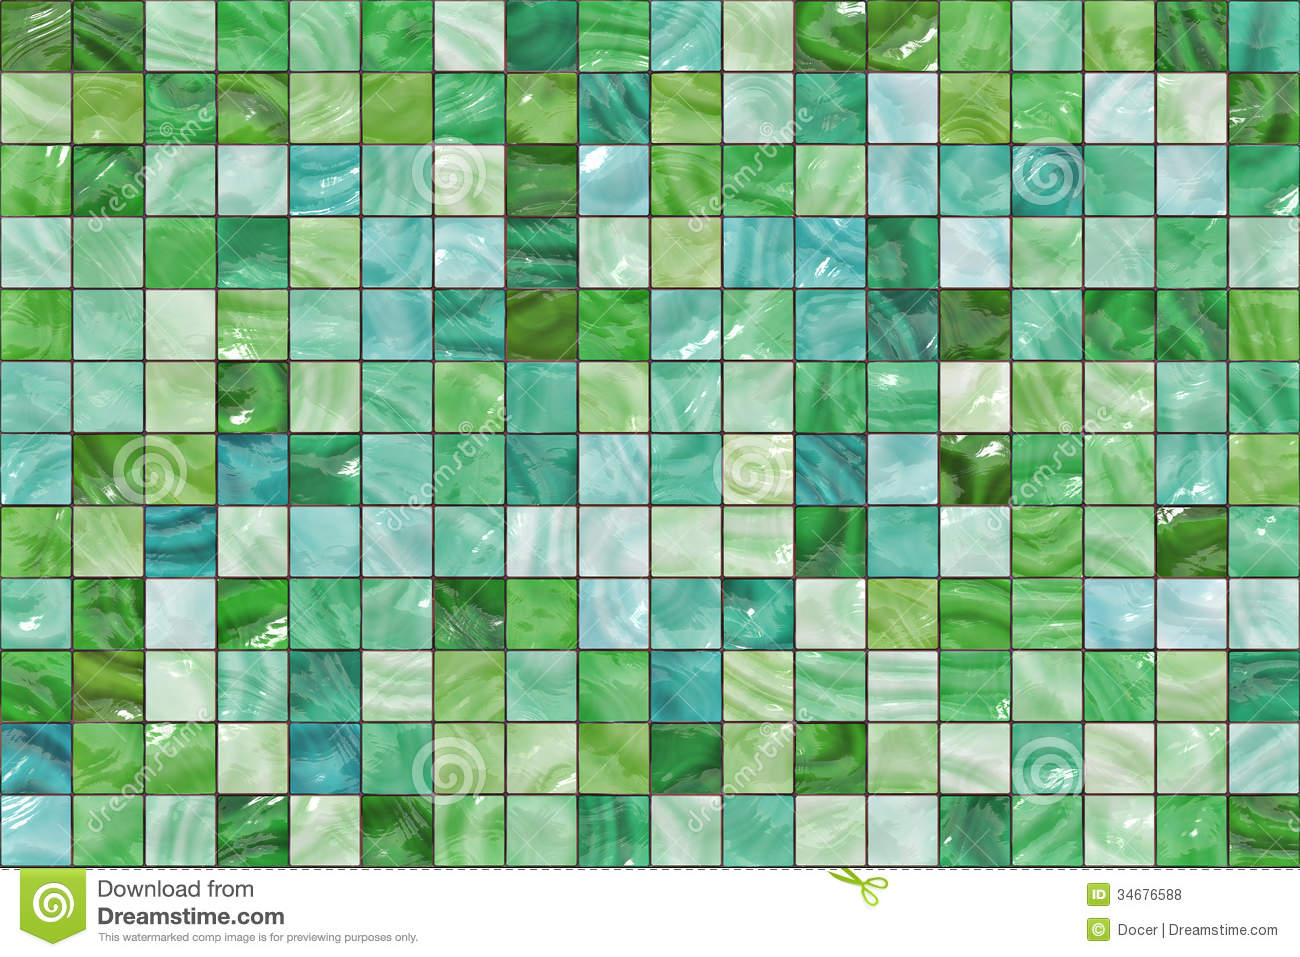 3d Colour Wallpaper Free Download Many Small Colour Square Mosaic Pattern Texture Abstract